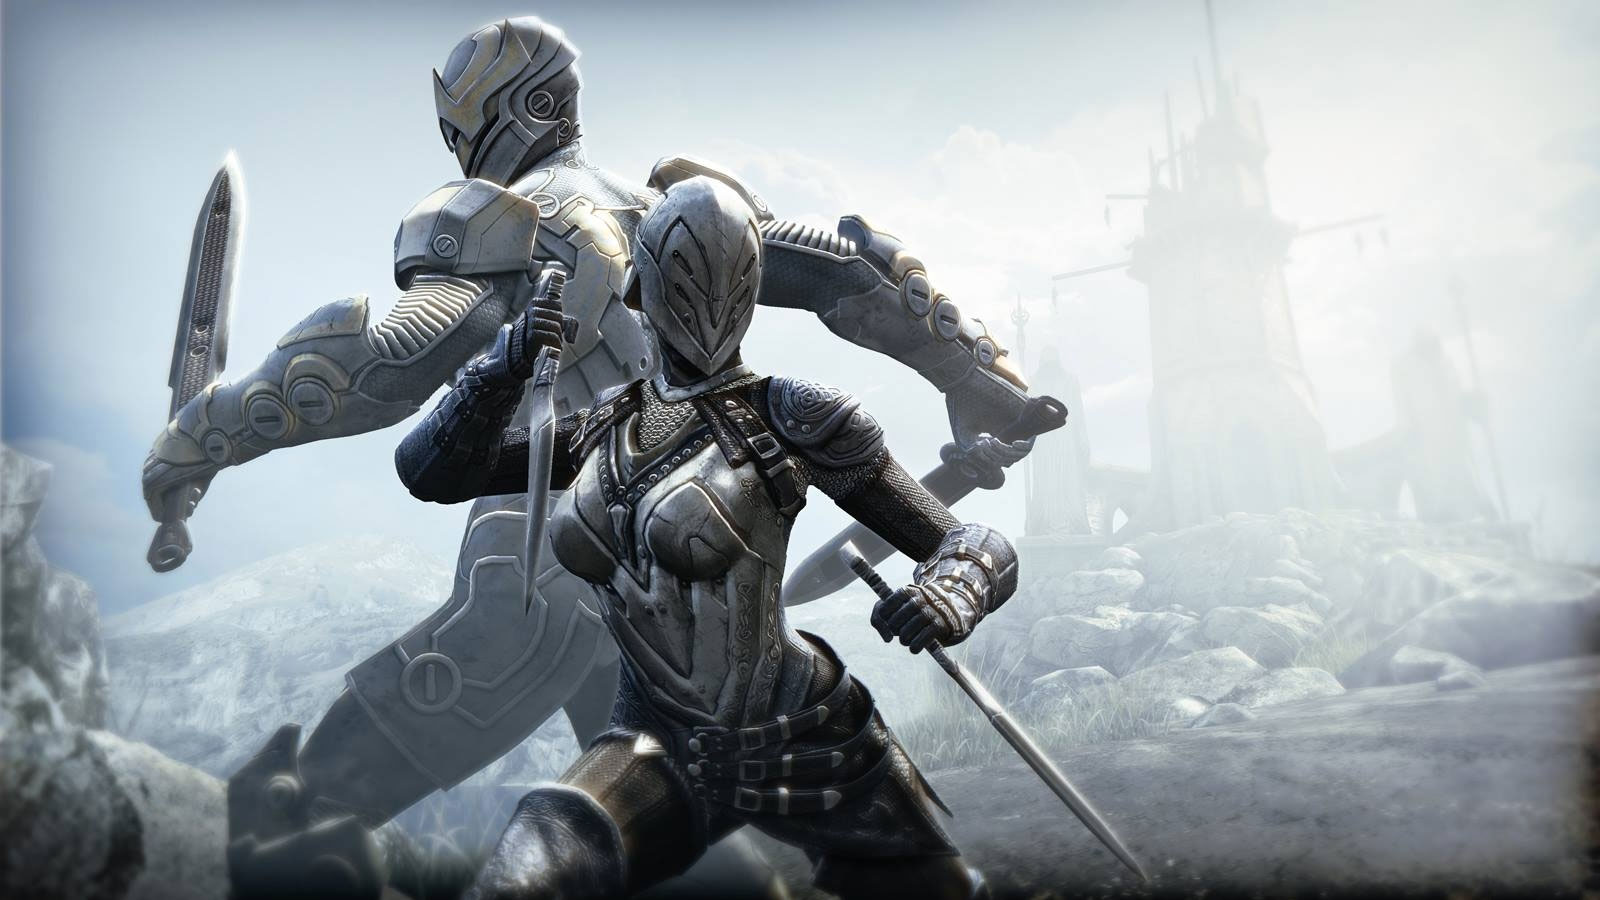 Infinity Blade III: Kingdom Come update plunges the final sword in on September 4th